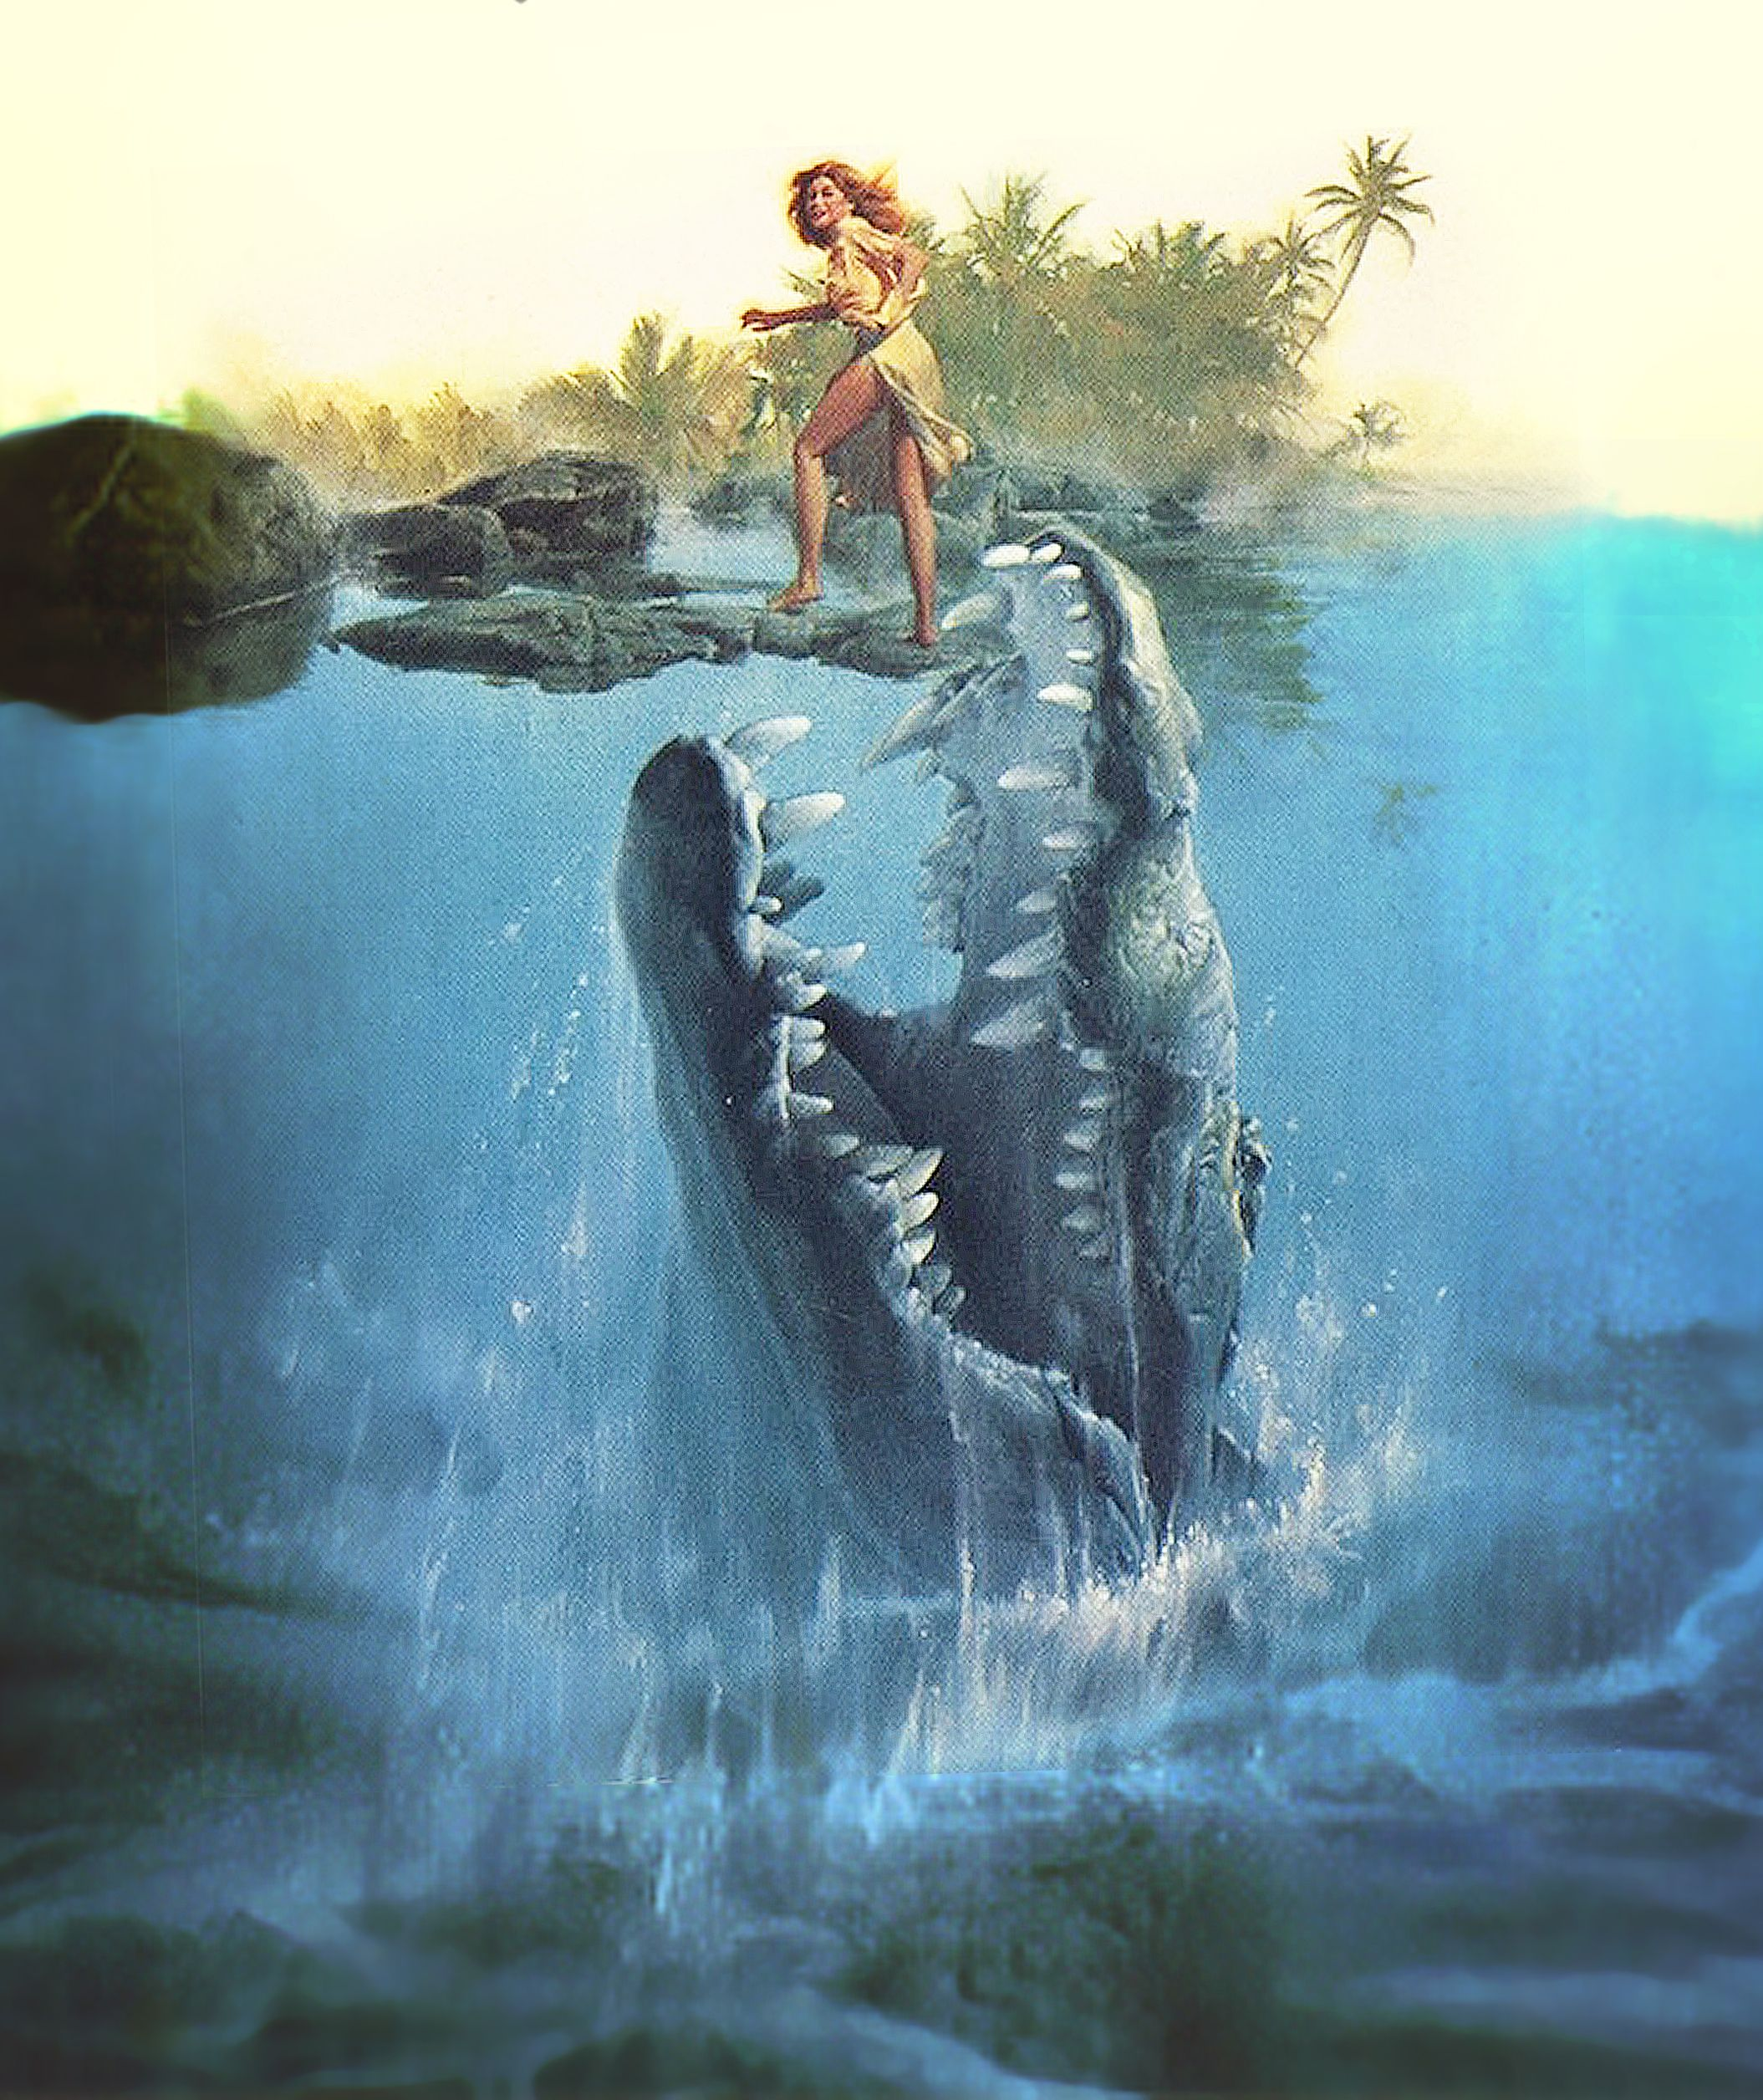 Jaws Book Cover Art : Creatures cover art by roger kastel artist behind jaws